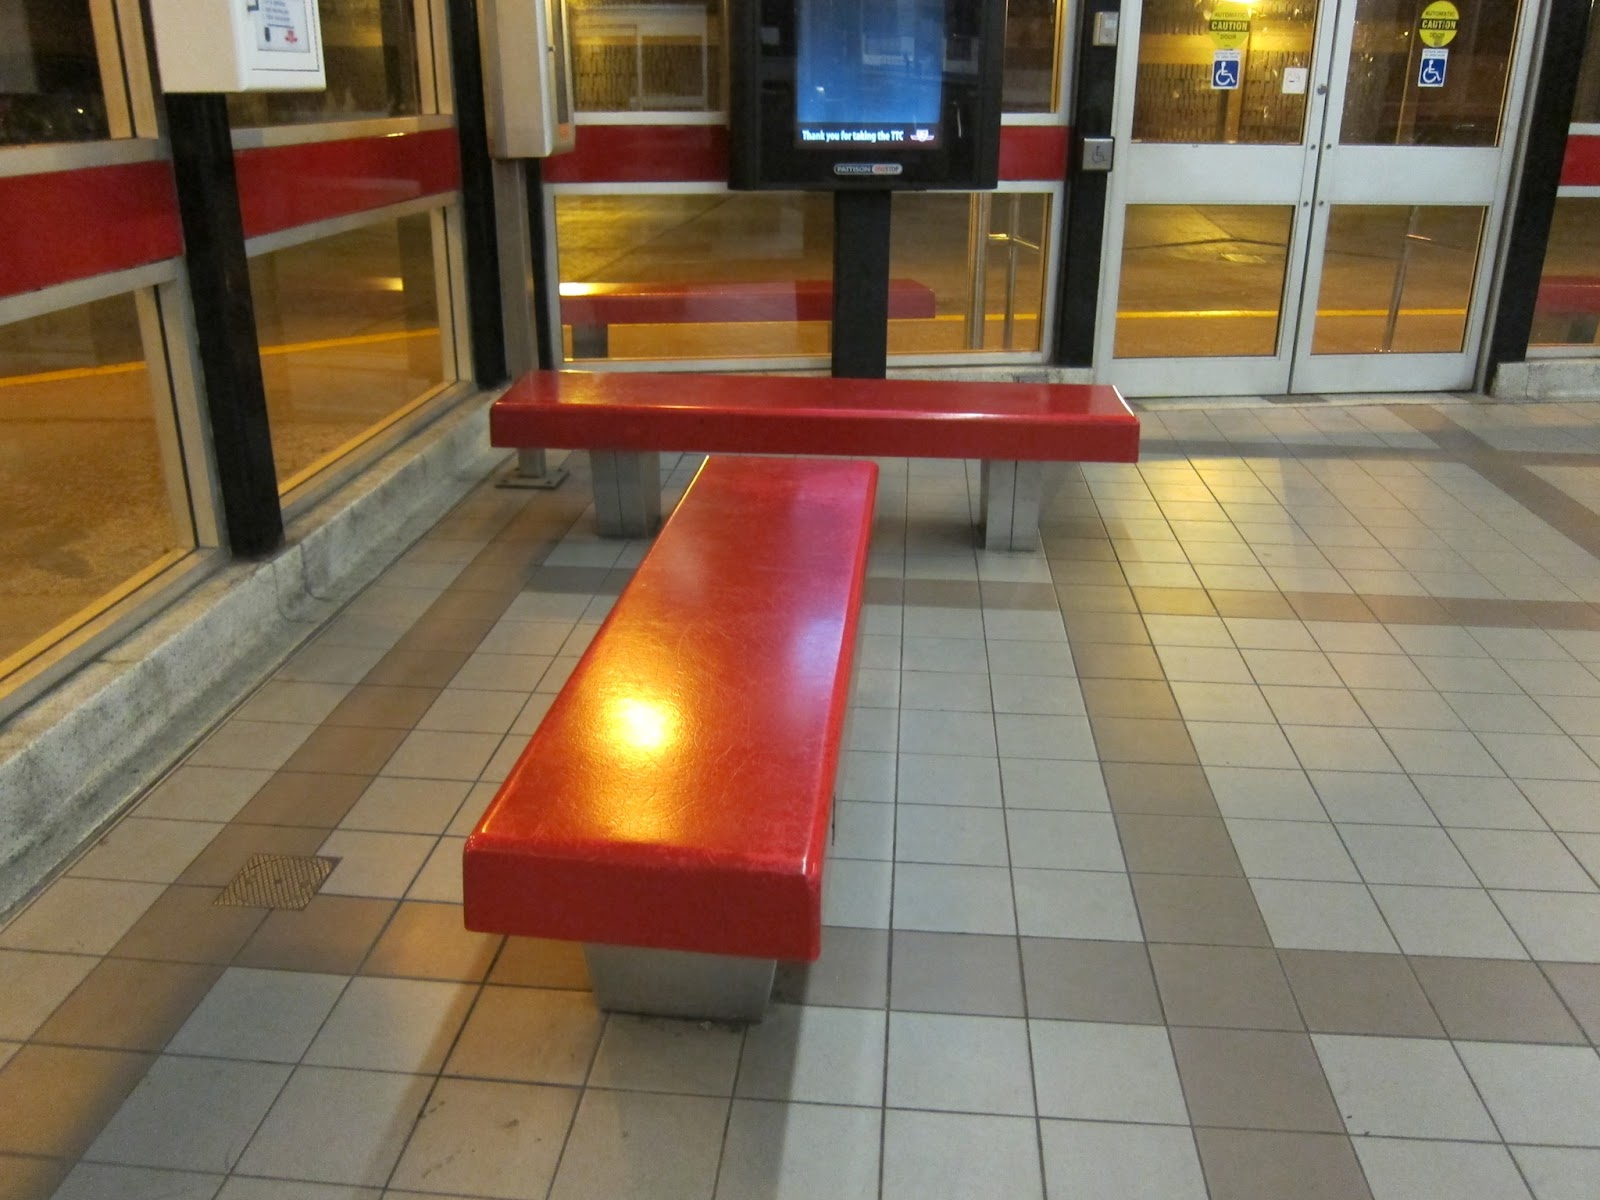 Benches in the main bus platform waiting area at Donlands station